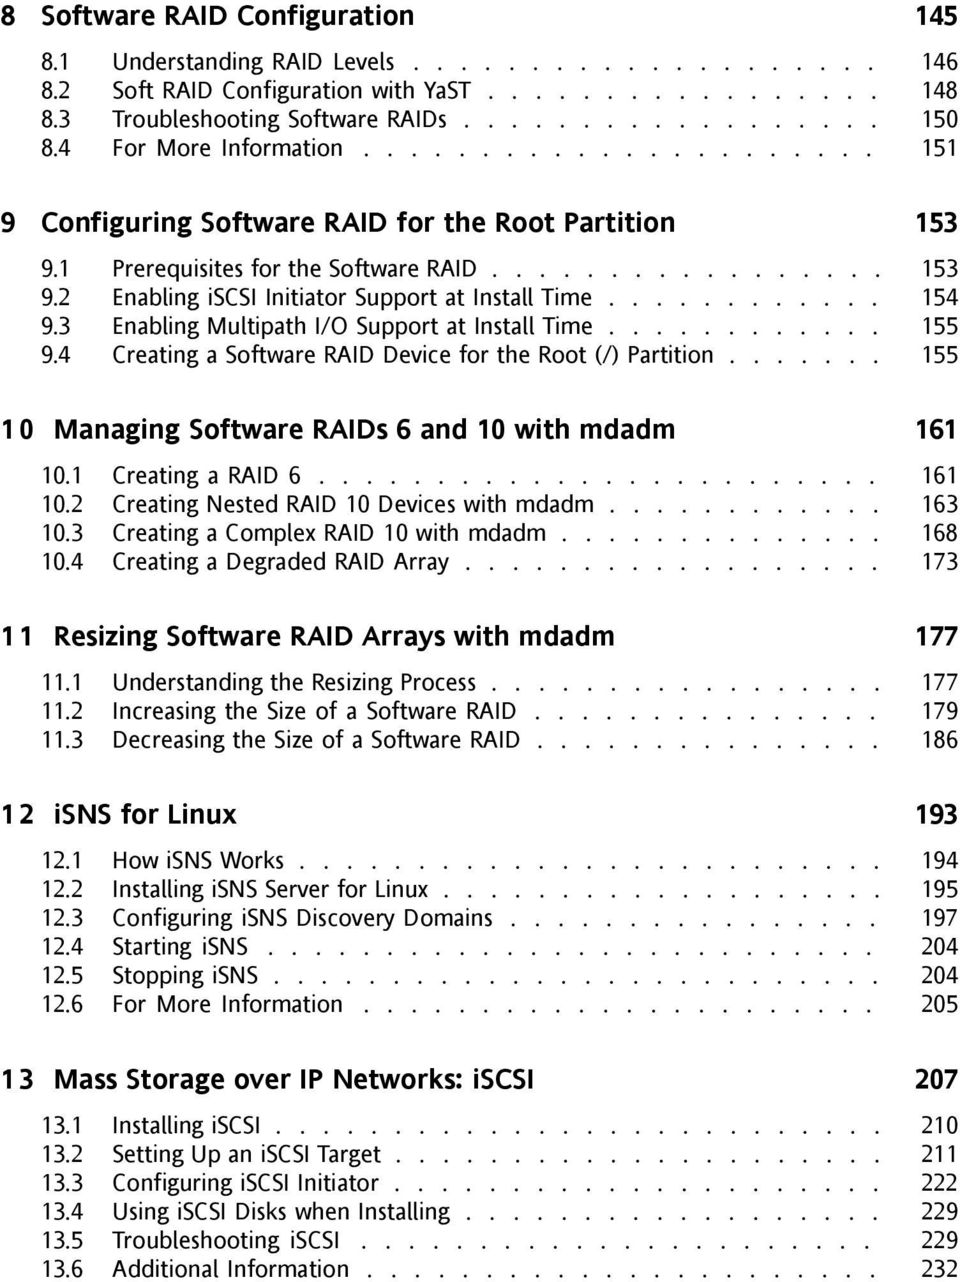 ........... 154 9.3 Enabling Multipath I/O Support at Install Time............ 155 9.4 Creating a Software RAID Device for the Root (/) Partition.